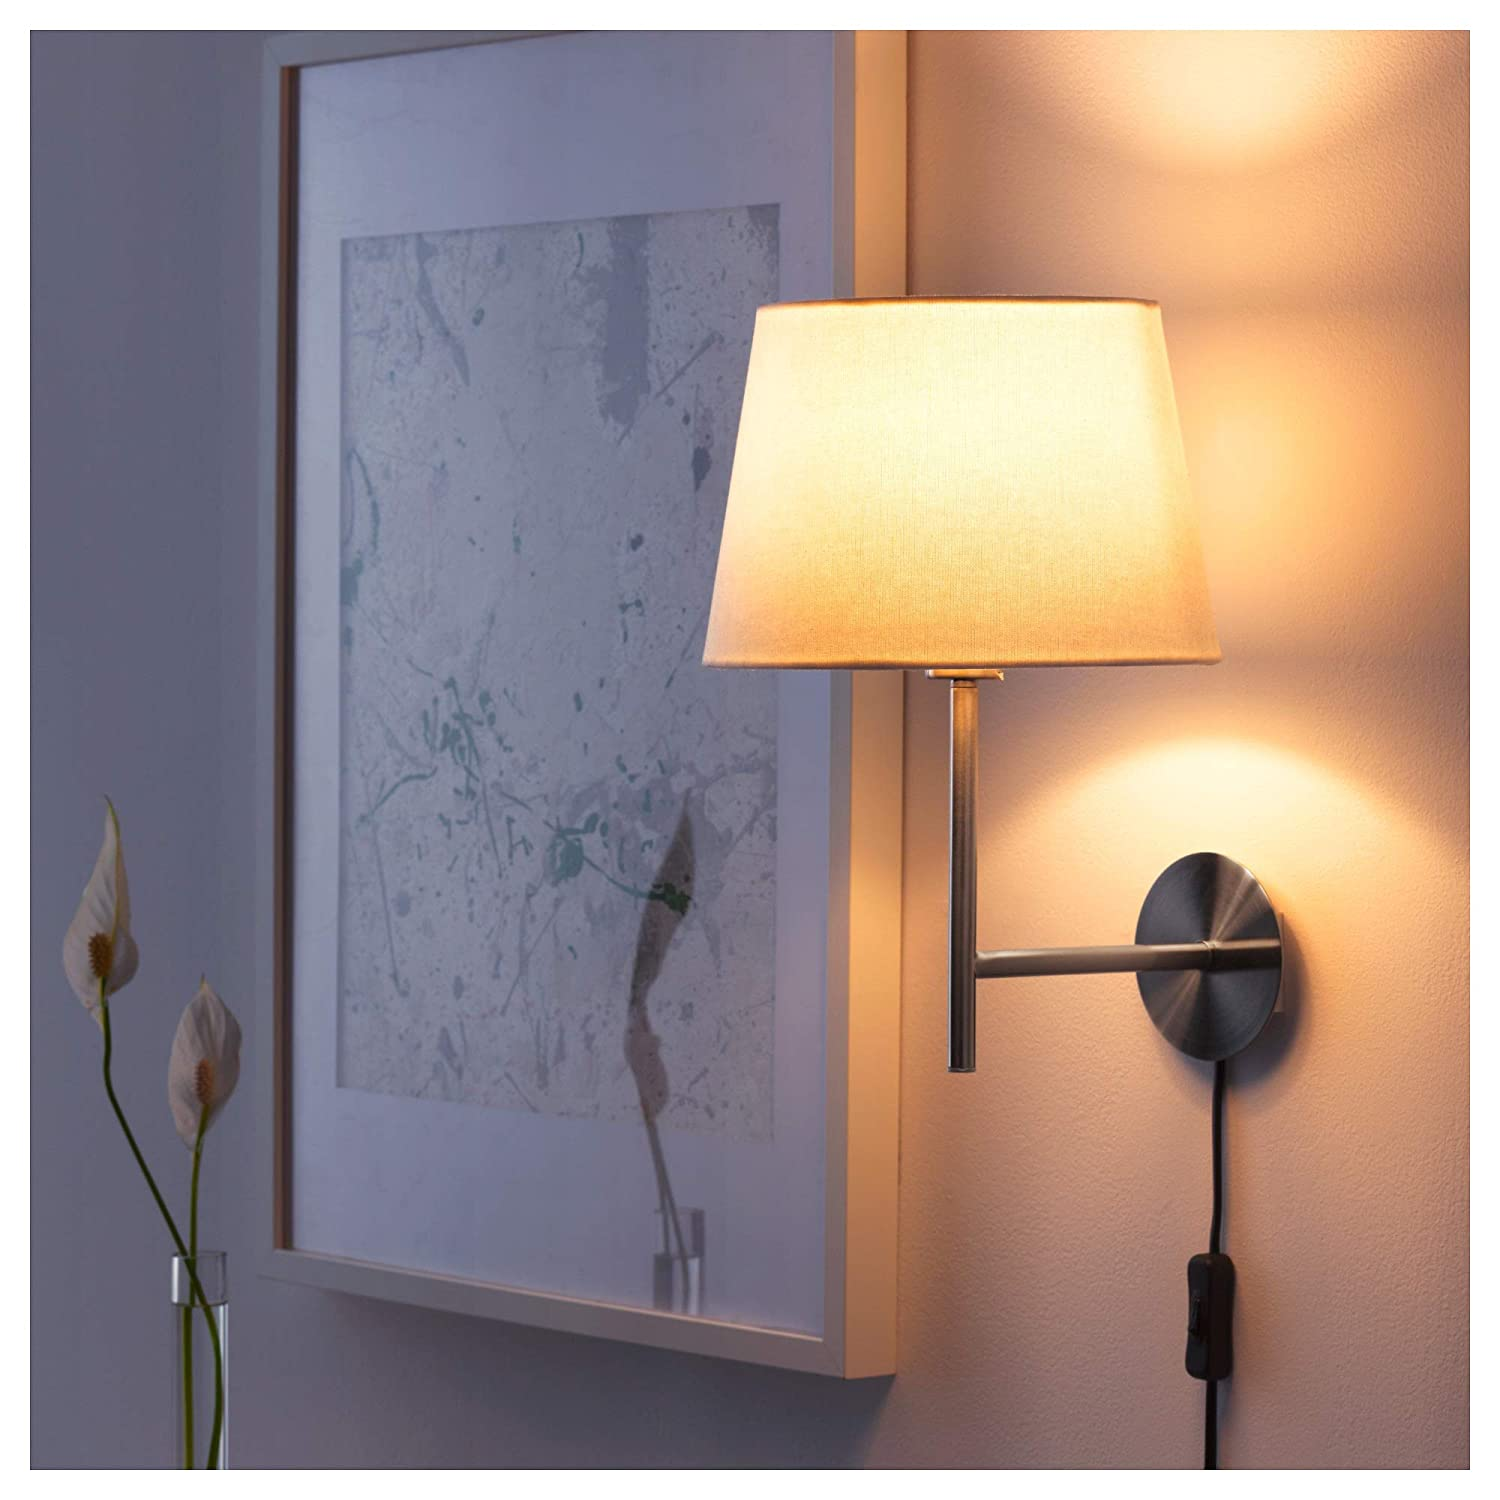 IKEA 804.161.61 Rodd Wall Lamp with Led Bulb Nickel Plated